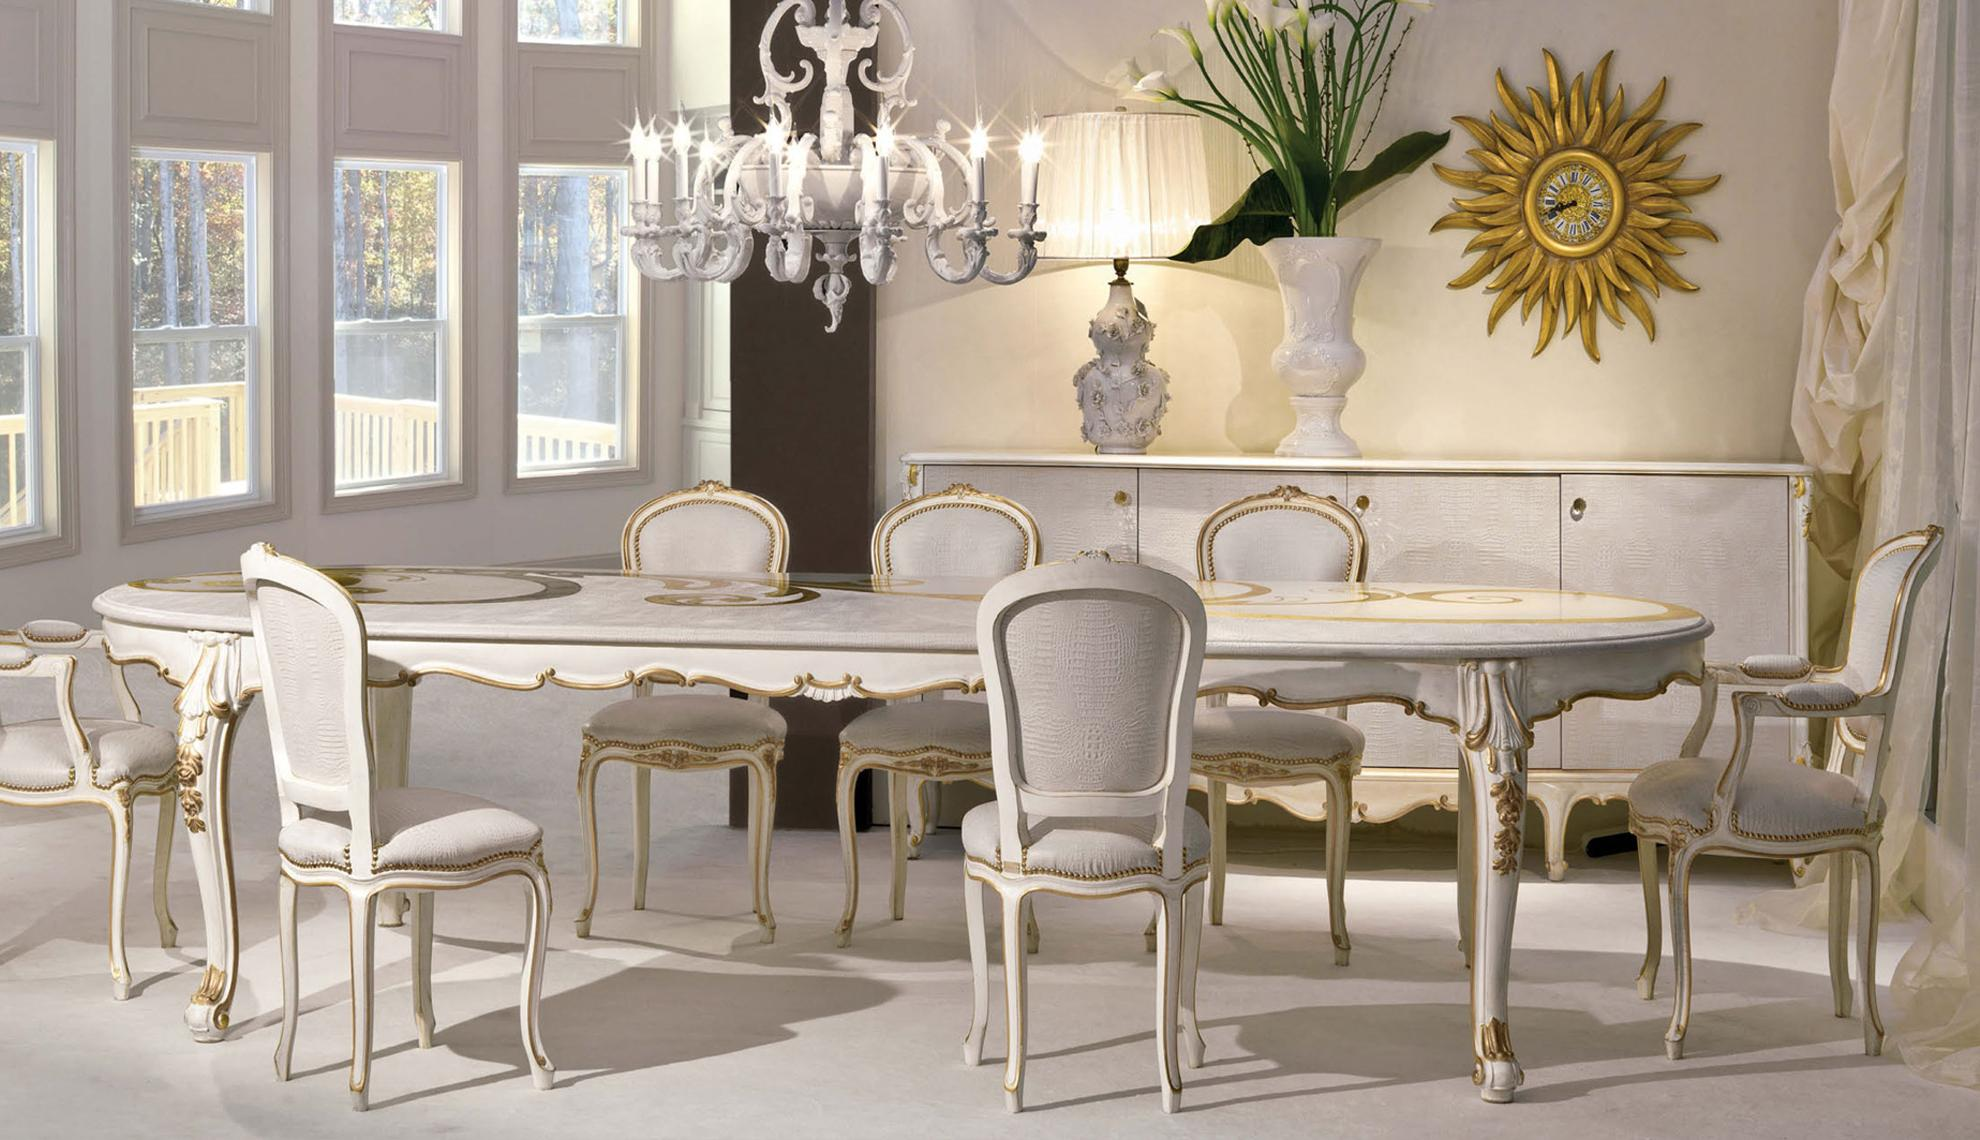 dining room table and chairs ideas with images unique high end office furniture trend home design and decor